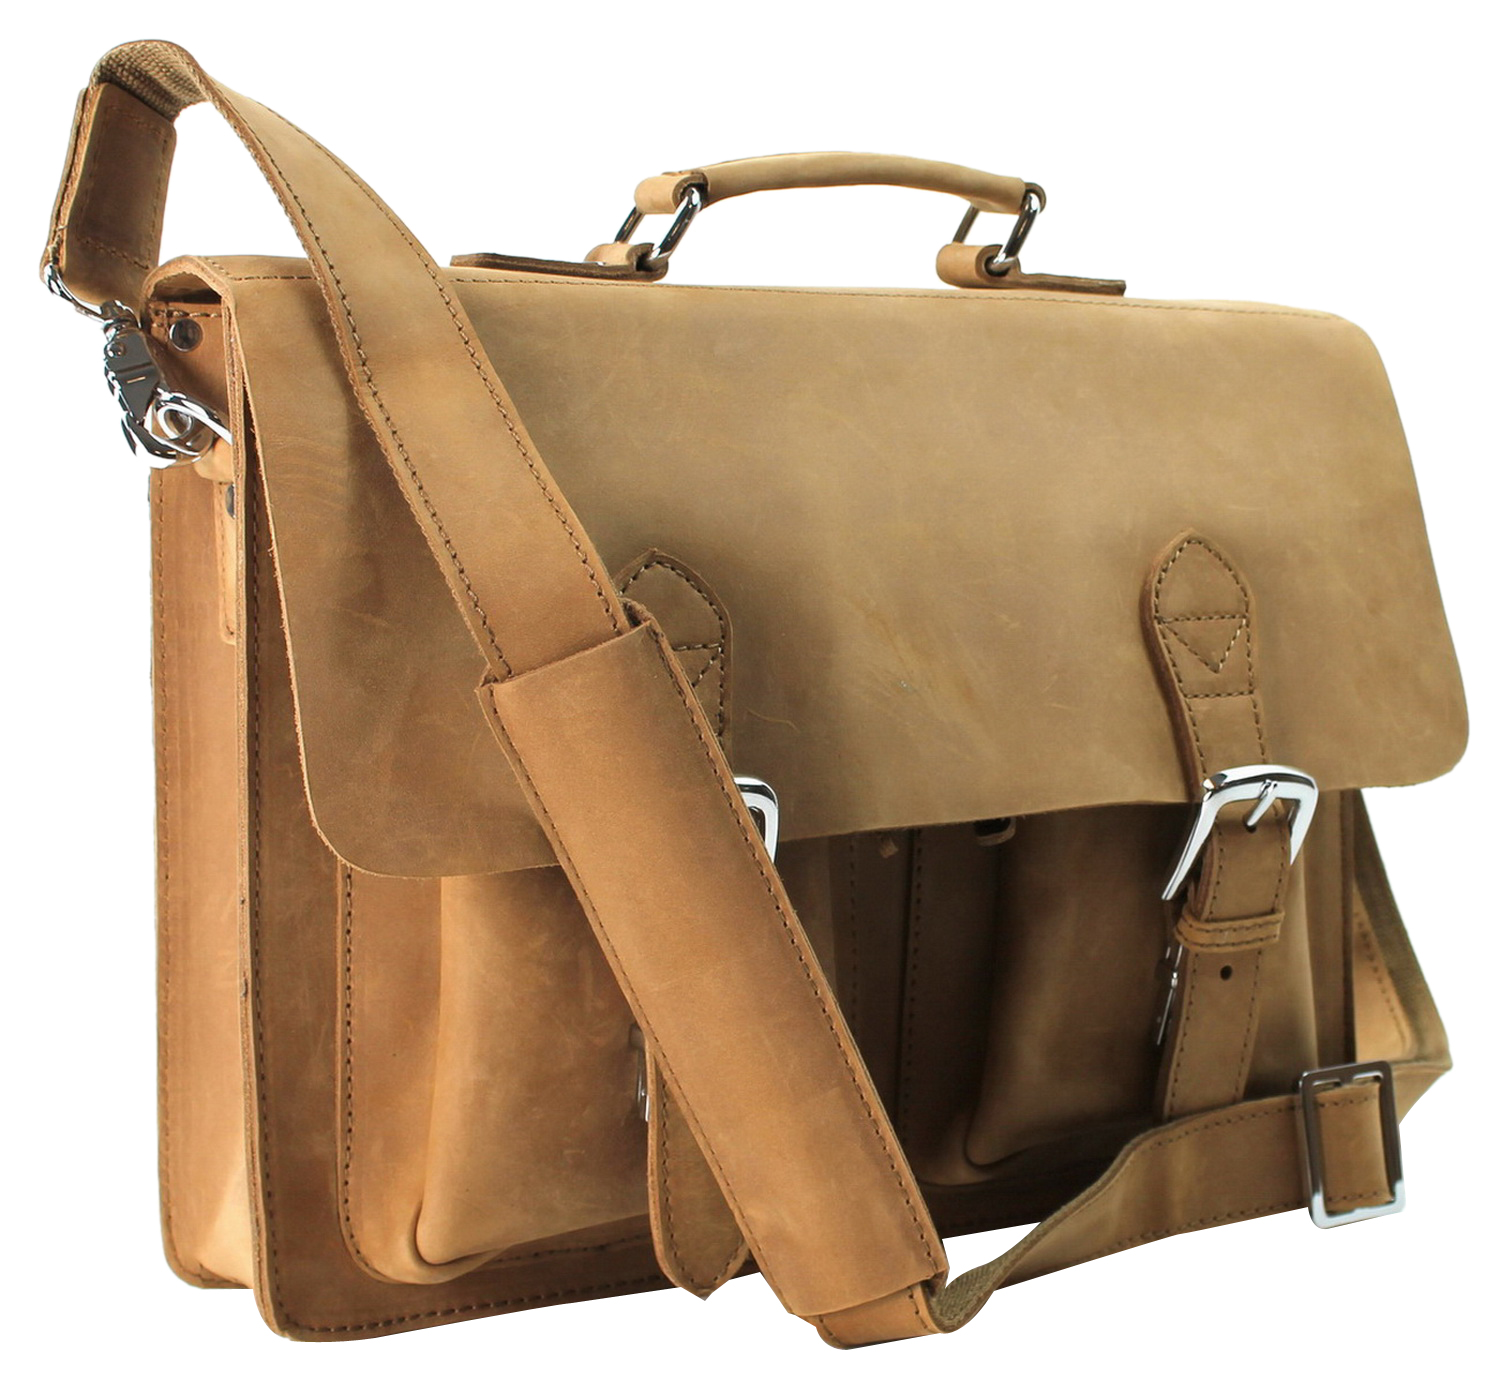 Vagabond Traveler Cowhide Leather Briefcase Laptop Bag L38.NB